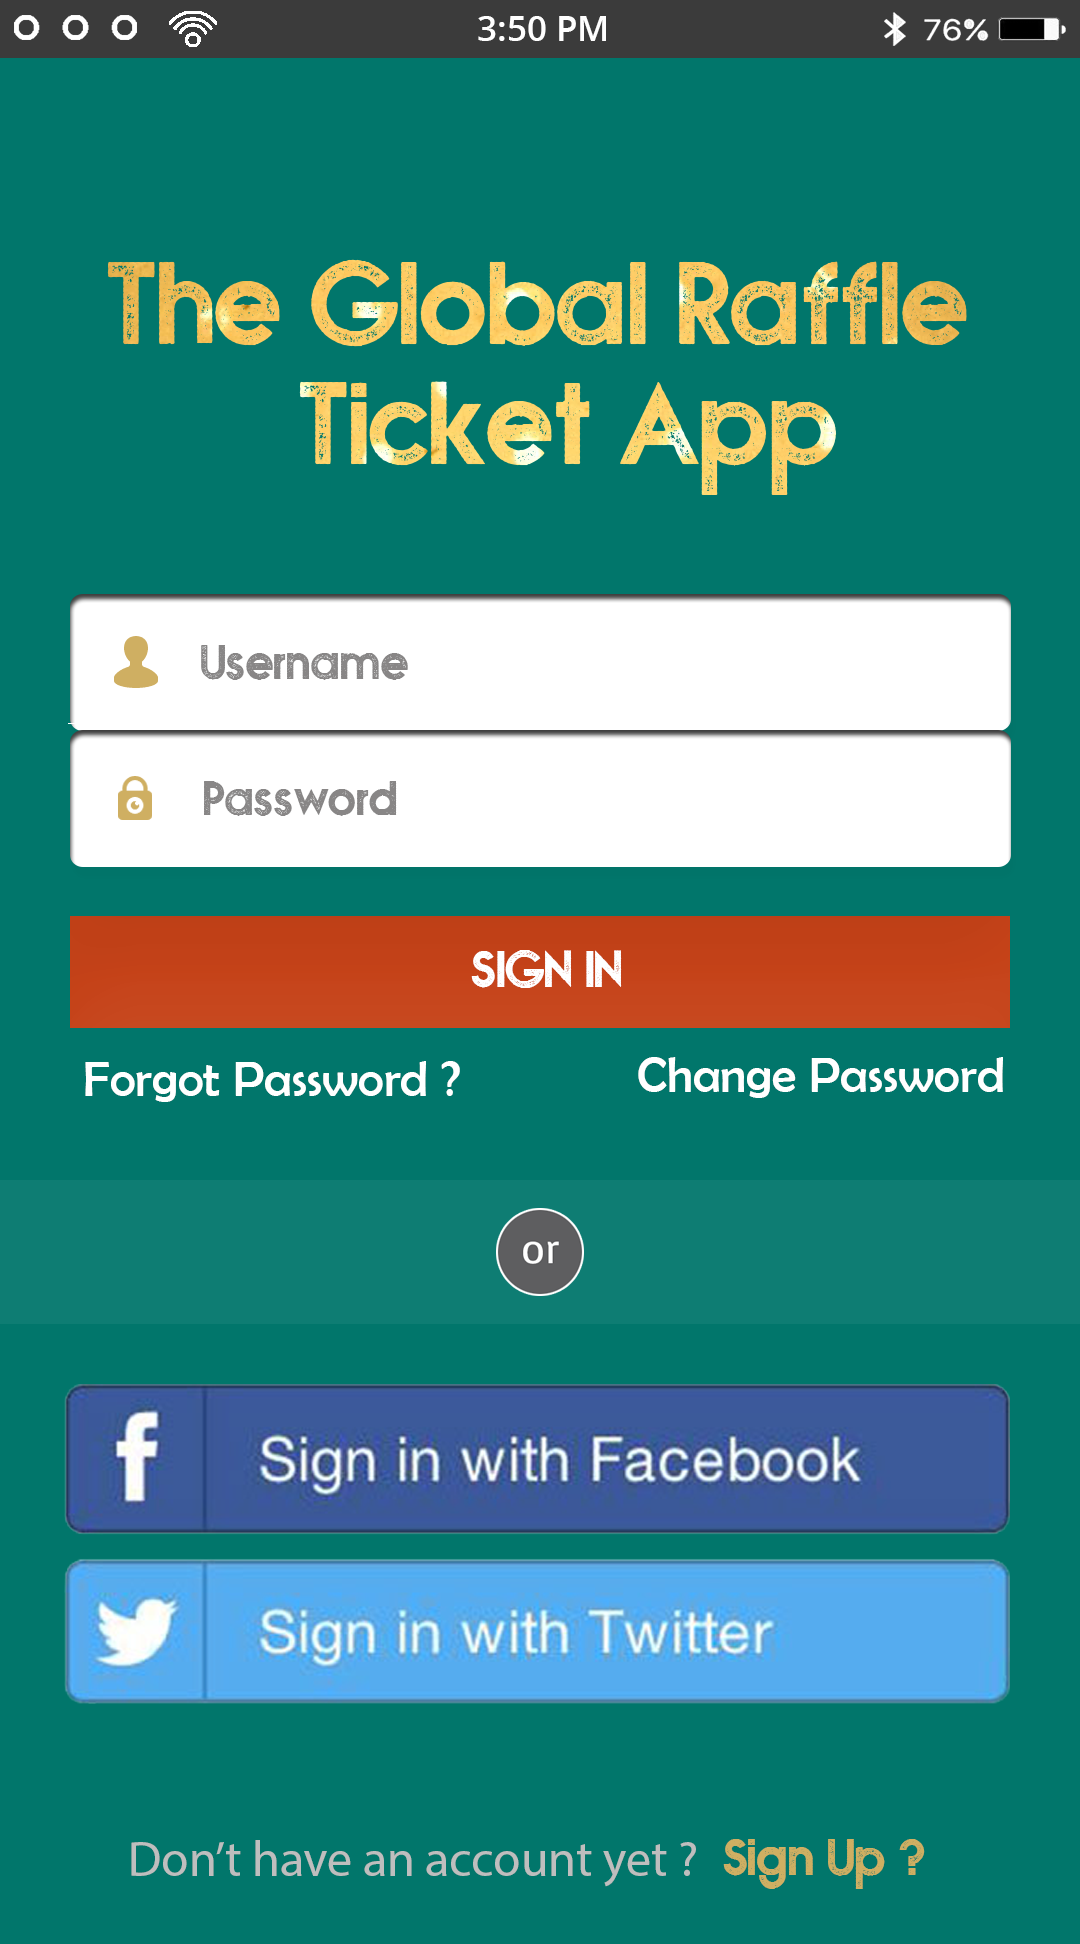 The Global Raffle Ticket App